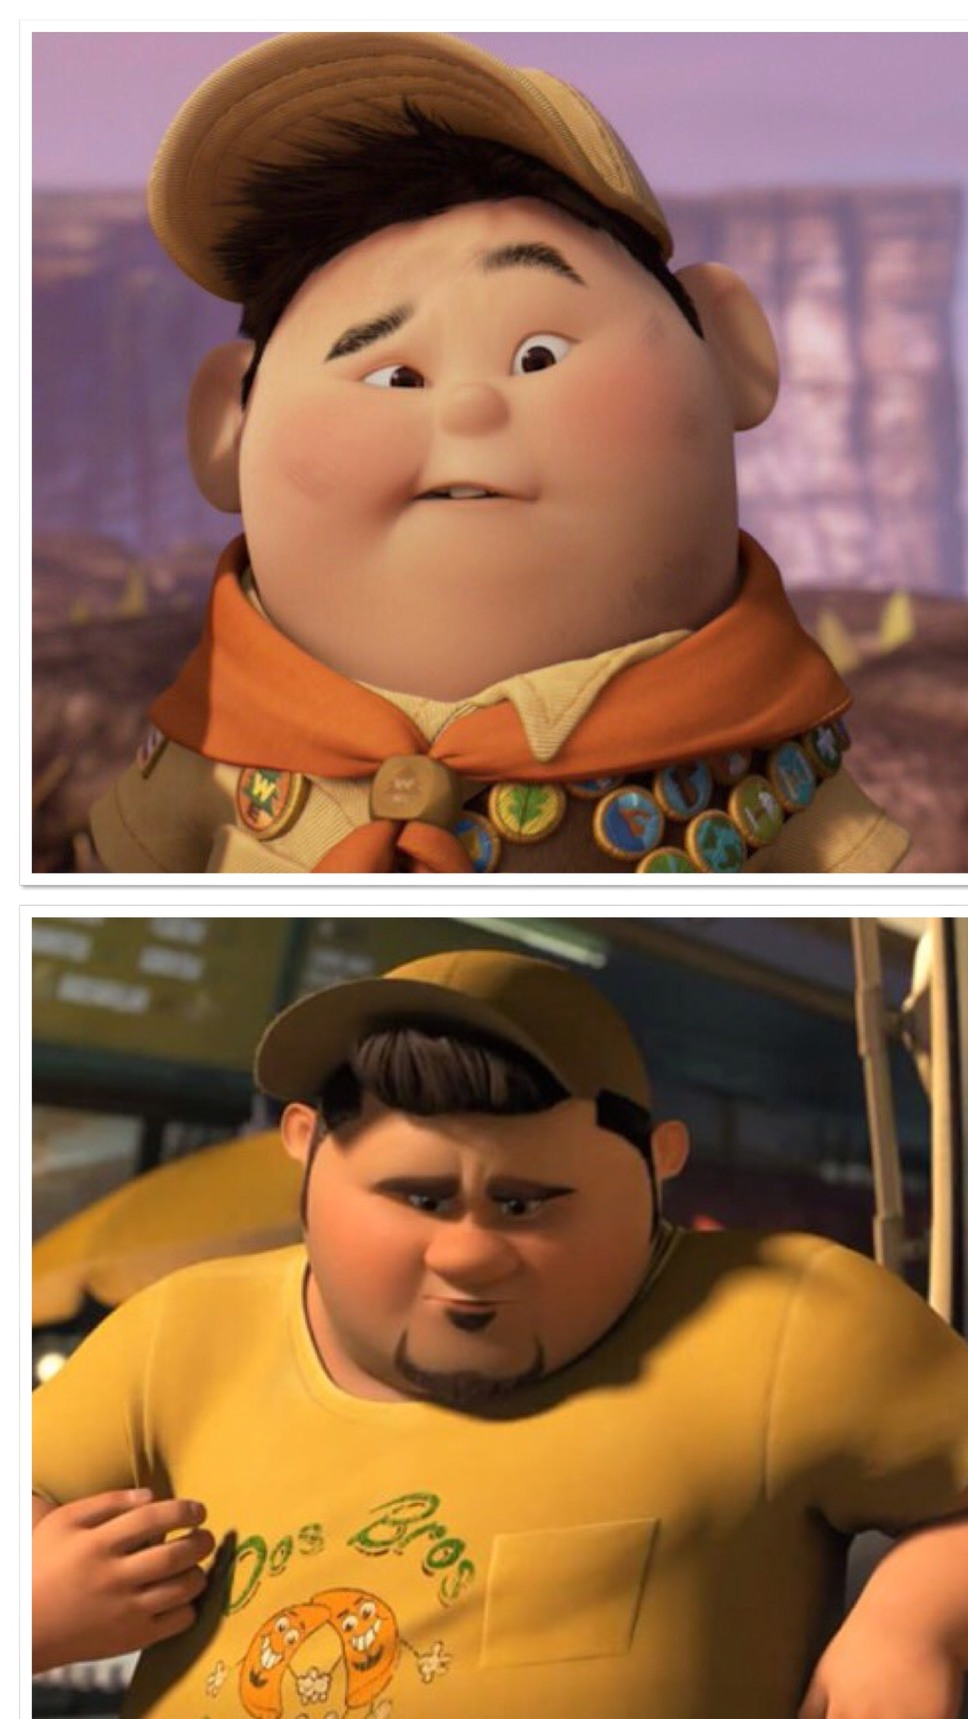 kid from up and the guy from turbo - meme